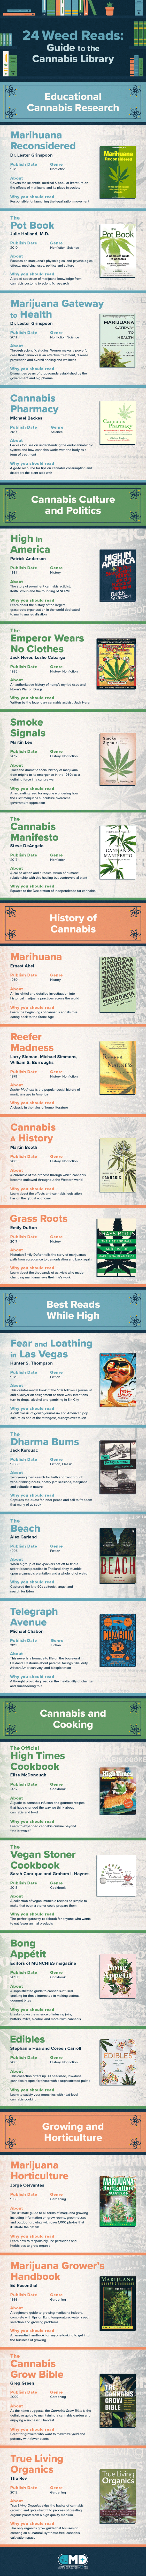 [image description: An infographic with this following text… [Section 1] Educational Cannabis Research. Marihuana Reconsidered. Publish date: 1971. Author(s): Dr. Lester Grinspoon. Genre: Nonfiction. About: Covers the scientific, medical & popular literature on the effects of marijuana and its place in society. Why you should read: Responsible for launching the legalization movement. The Pot Book: A Complete Guide to Cannabis. Publish date: 2010. Author(s): Julie Holland, M.D. Genre: Health, Science. About: Focuses on marijuana's physiological and psychological effects, medicinal uses, politics and culture. Why you should read: Broad spectrum of marijuana knowledge from stoner customs to scientific research. Marijuana Gateway to Health. Publish date: 2011. Author(s): Clint Werner. Genre: Nonfiction, Science. About: Through scientific studies, Werner makes a powerful case that cannabis is effective for treatment, disease prevention and overall healing and wellness. Why you should read: Dismantles years of propaganda established by the government and big pharma. Cannabis Pharmacy: The Practical Guide to Medical Marijuana. Publish date: 2017. Author(s): Michael Backes. Genre: Science. About: Backes focuses on understanding the endocannabinoid system and how cannabis works with the body as a form of treatment. Why you should read: A go-to for tips on cannabis consumption to disorders the plant aids with. [Section 2] Cannabis Culture and Politics. High in America: The True Story behind NORML and the Politics of Marijuana. Publish date: 1981. Author(s): Patrick Anderson. Genre: History. About: The story of prominent cannabis activist, Keith Stroup and the founding of NORML. Why you should read: Learn about the history of the largest grassroots organization in the world dedicated to marijuana legalization. The Emperor Wears No Clothes. Publish date: 1985. Author(s): Jack Herer, Leslie Cabarga. Genre: History, Nonfiction. About: An authoritative history of hemp's myriad use